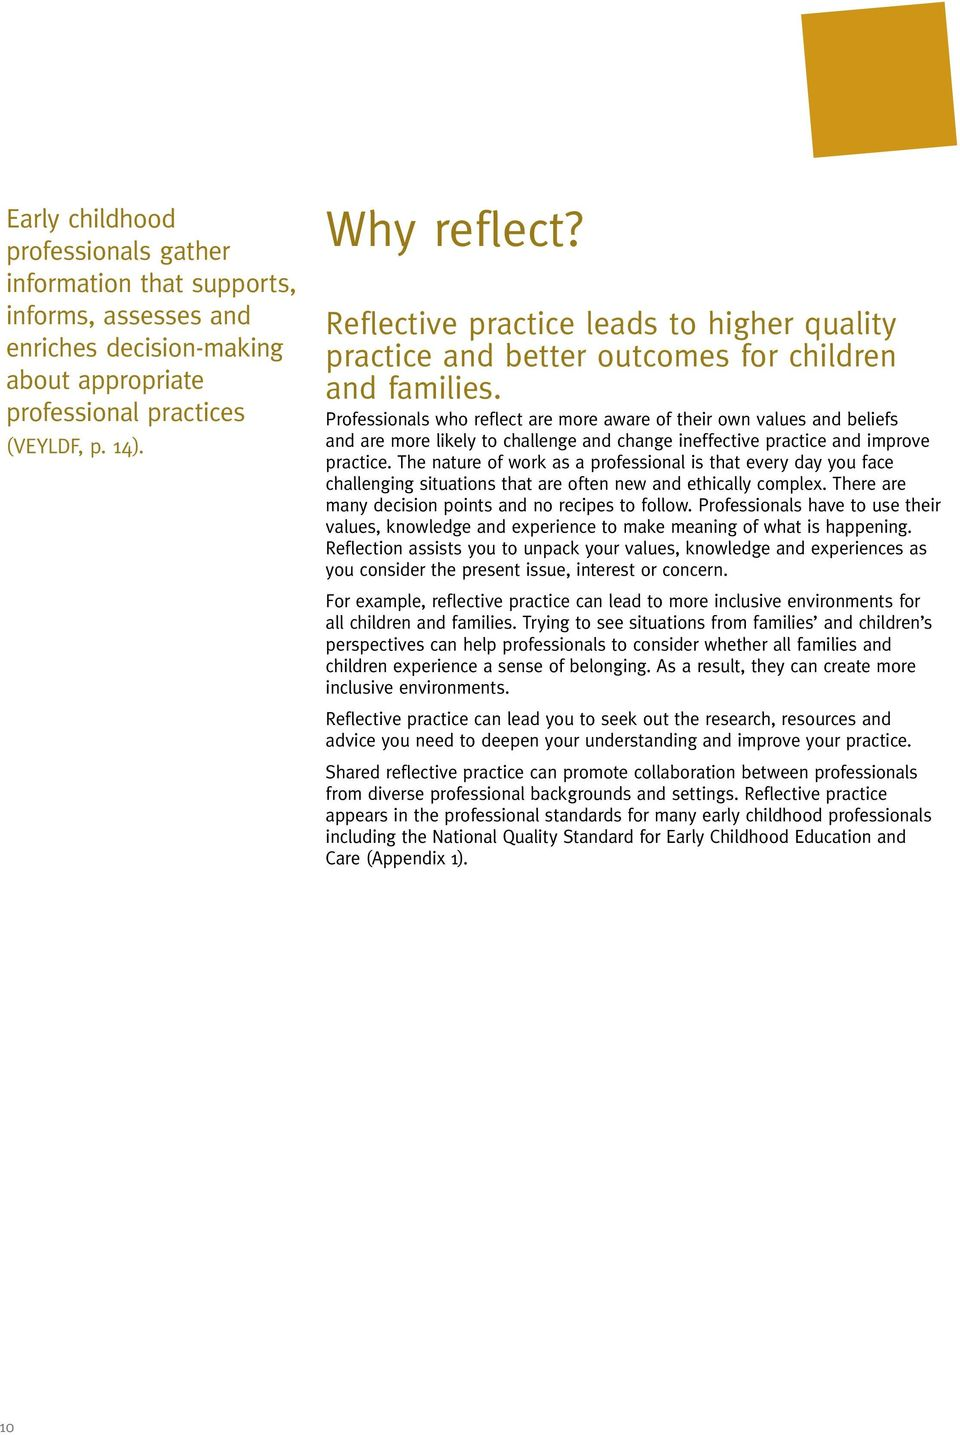 Professionals who reflect are more aware of their own values and beliefs and are more likely to challenge and change ineffective practice and improve practice.